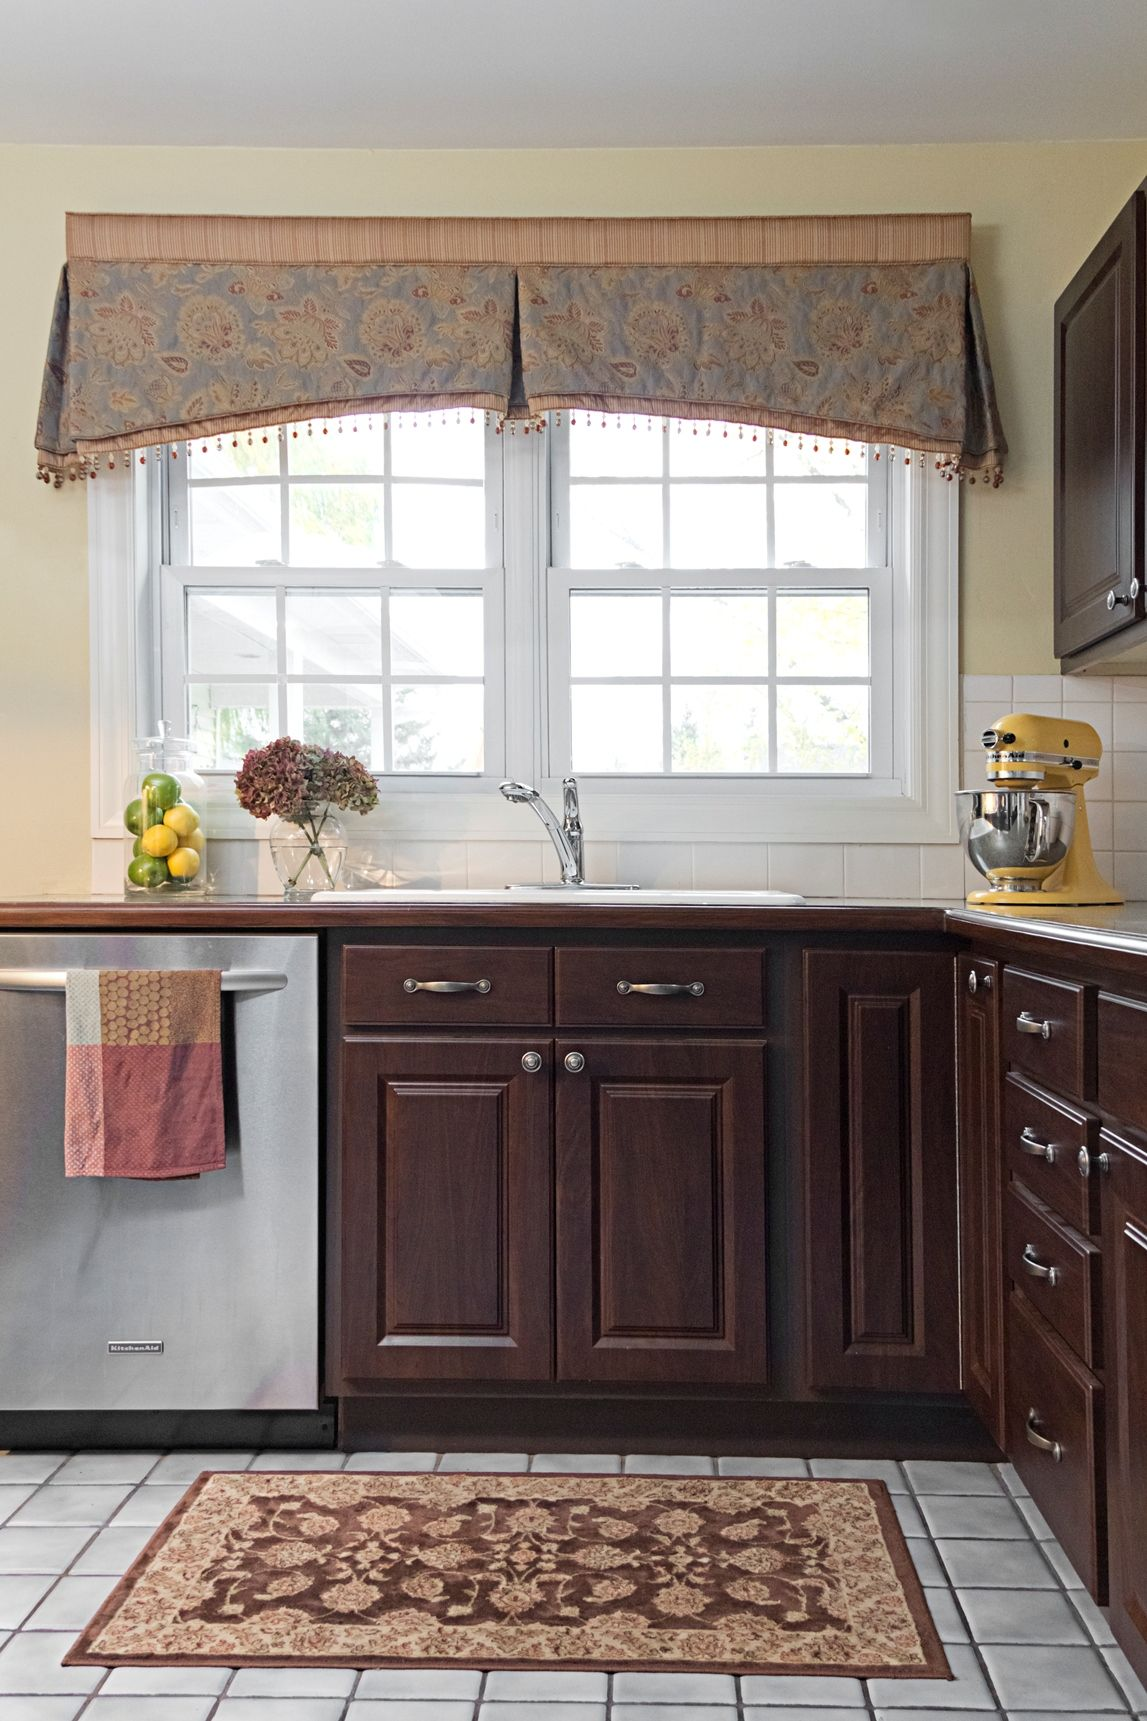 Treating both windows as one. Like the center pleat in middle with ...